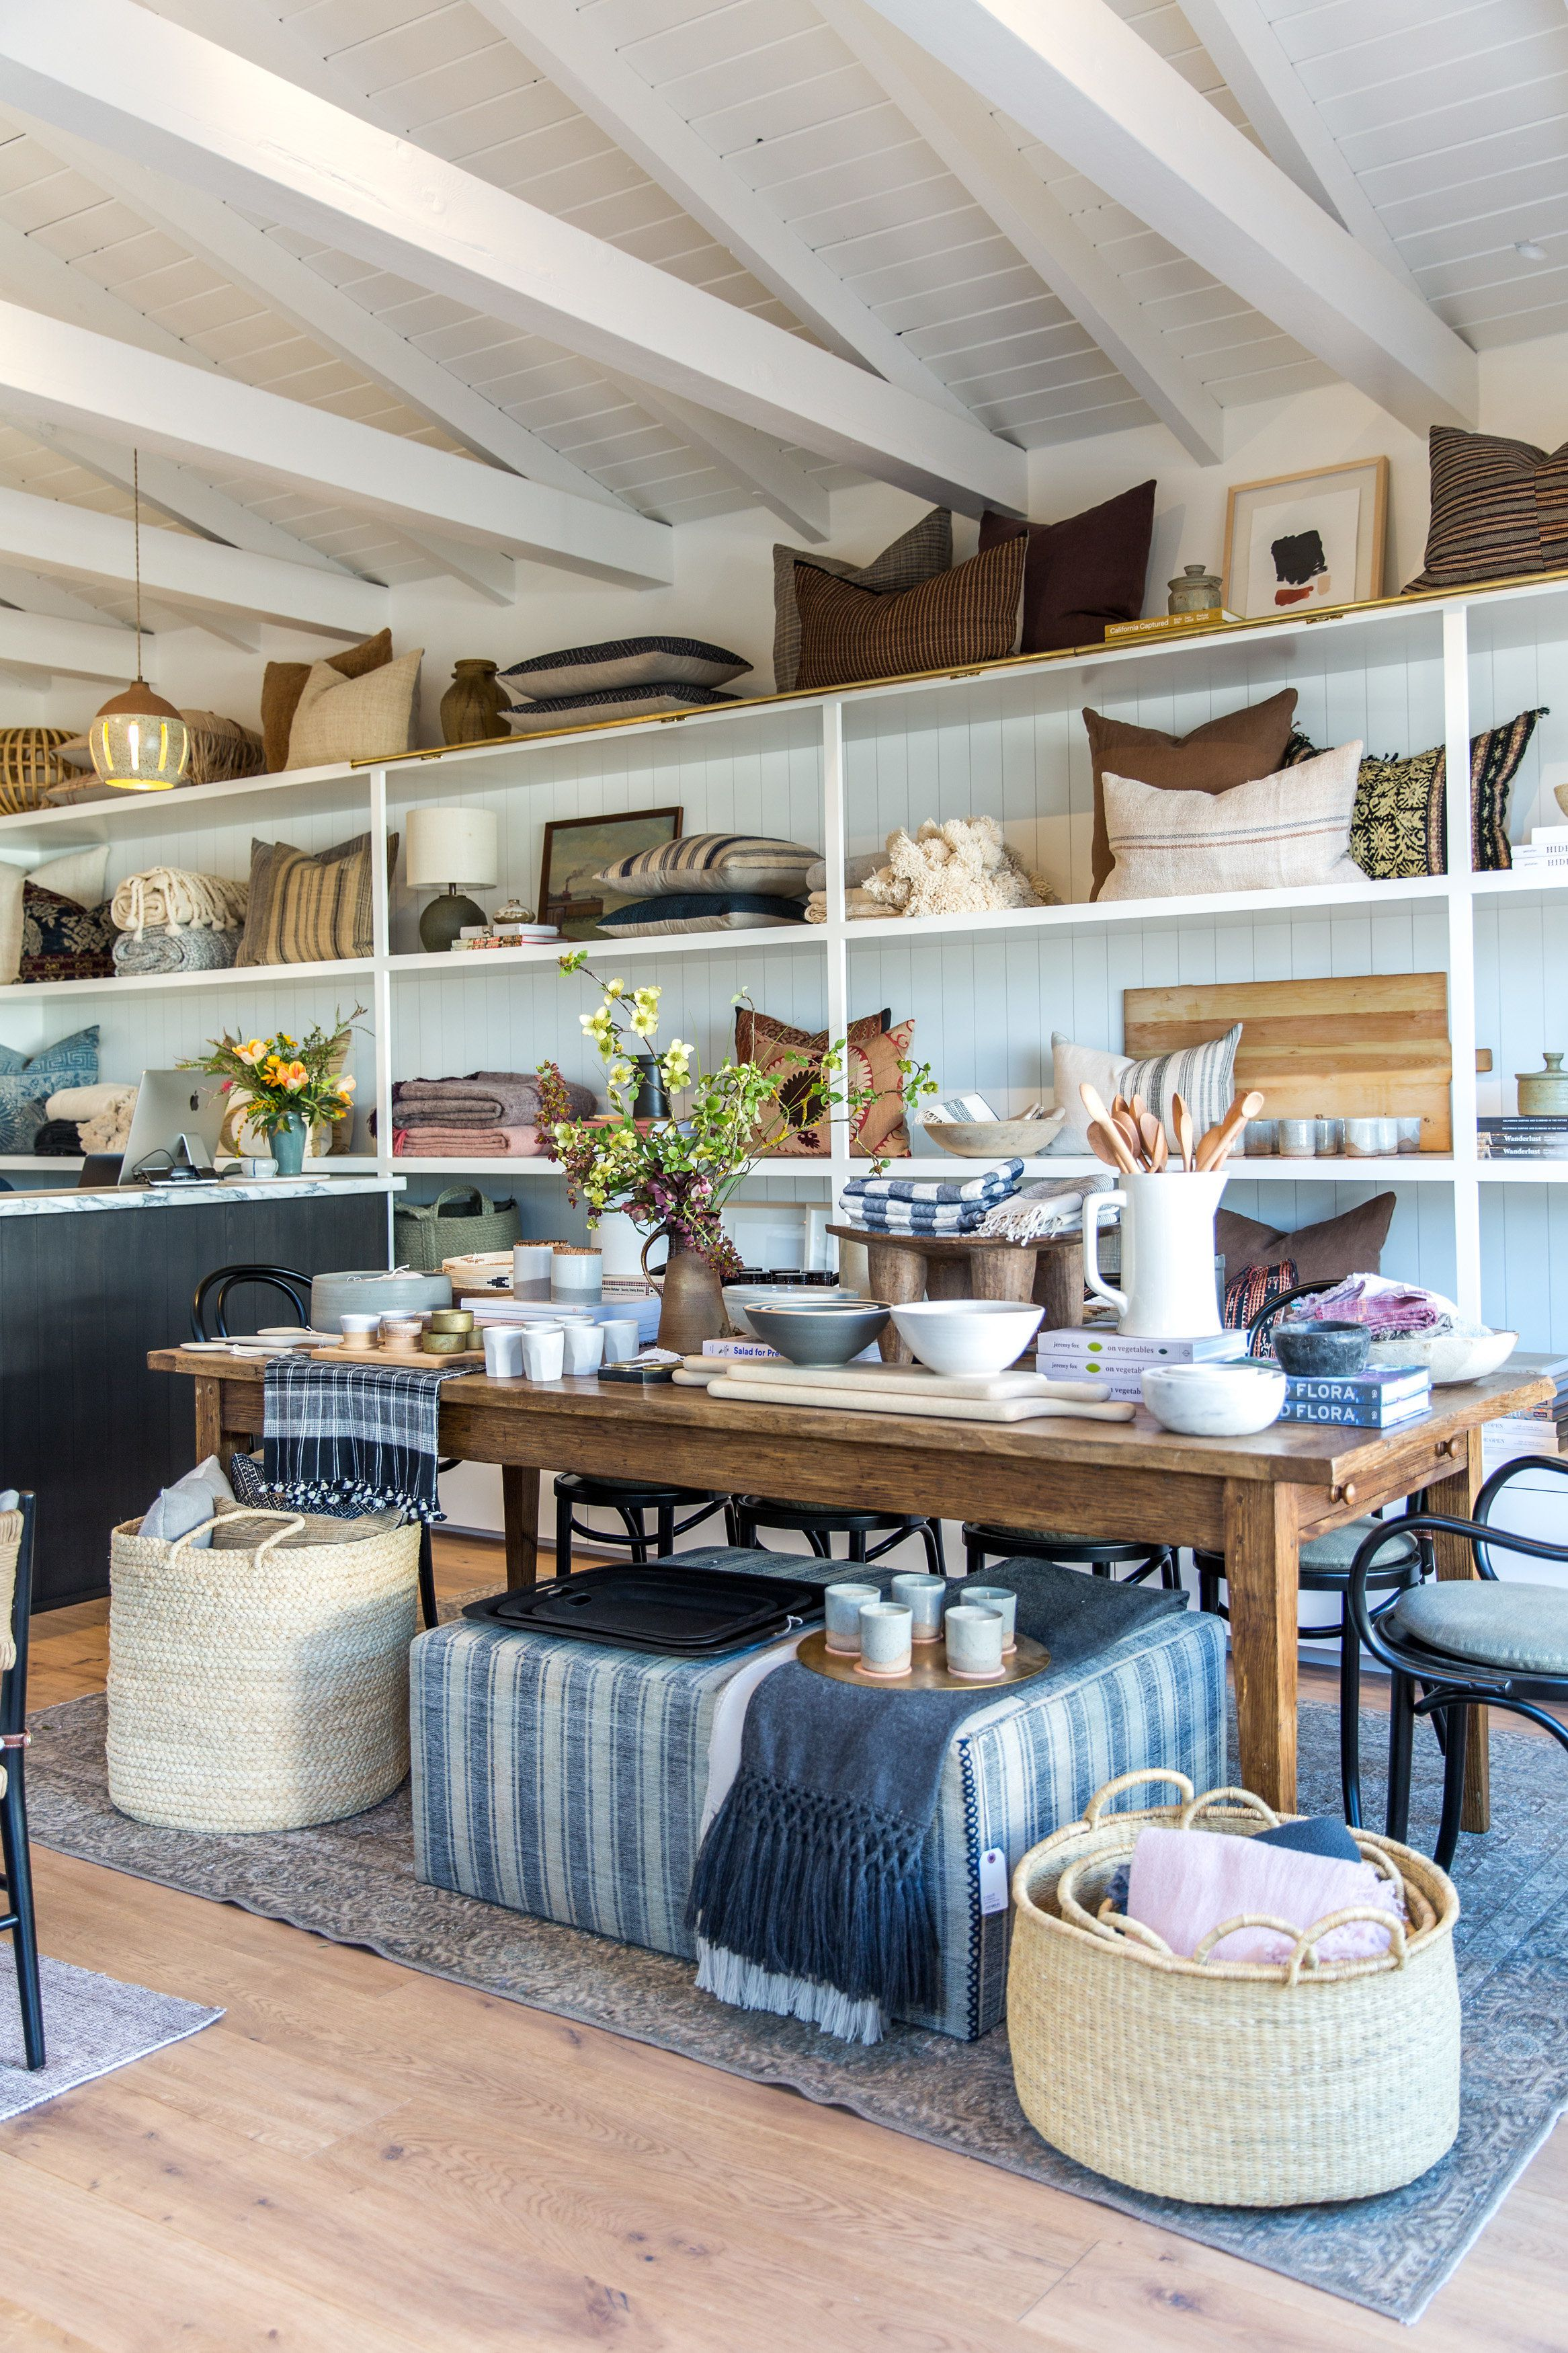 f6f4a71dea9 Give It Up for the 'Gram: 25 Interior Design Stores You Need to Follow on  Instagram